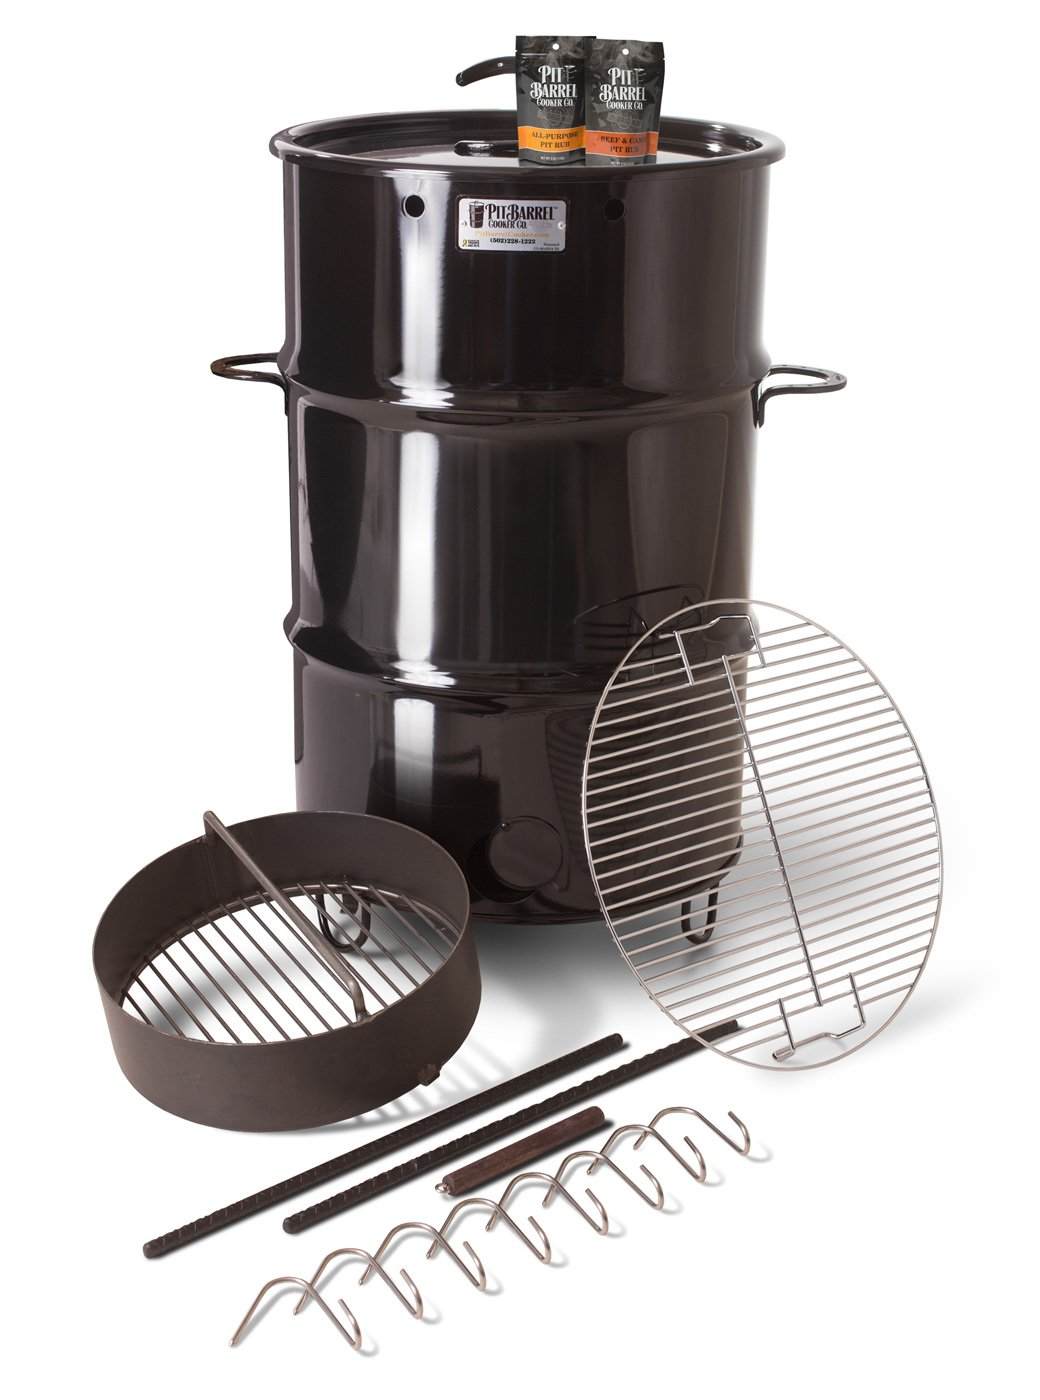 Pit barrel cooker smoker grill